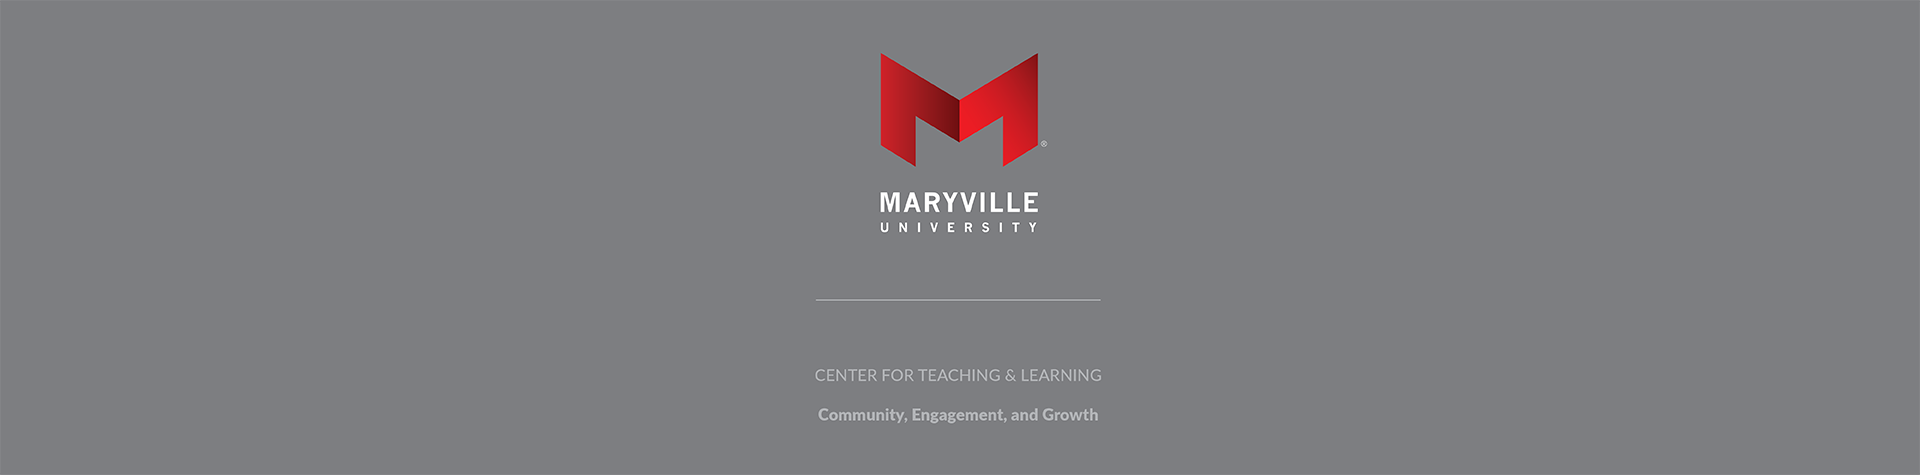 center for teaching and learning banner with logo